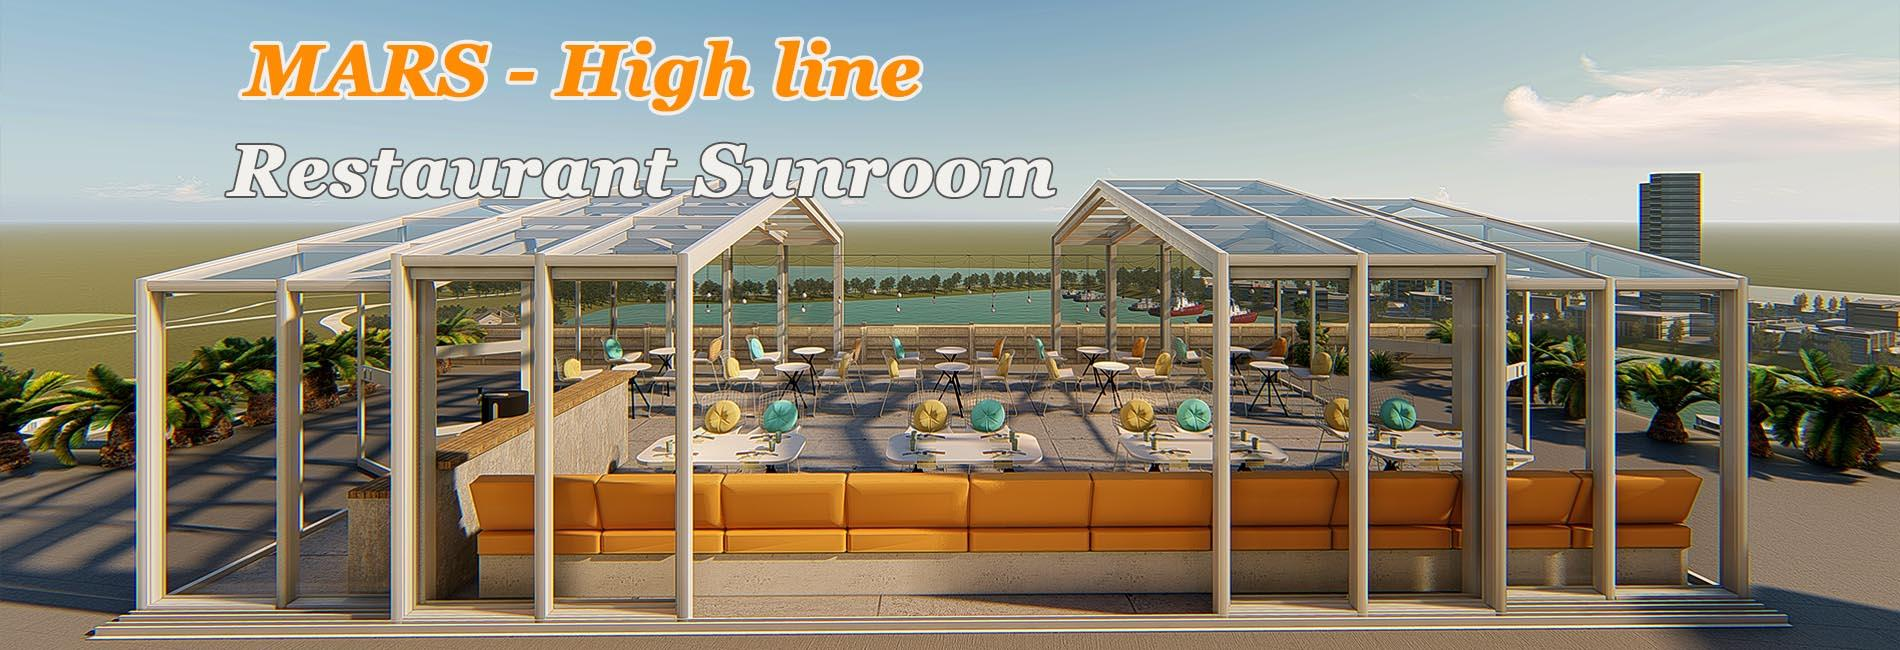 SHELTER SUNSHIELD- Mars high line freestanding restaurant sunroom